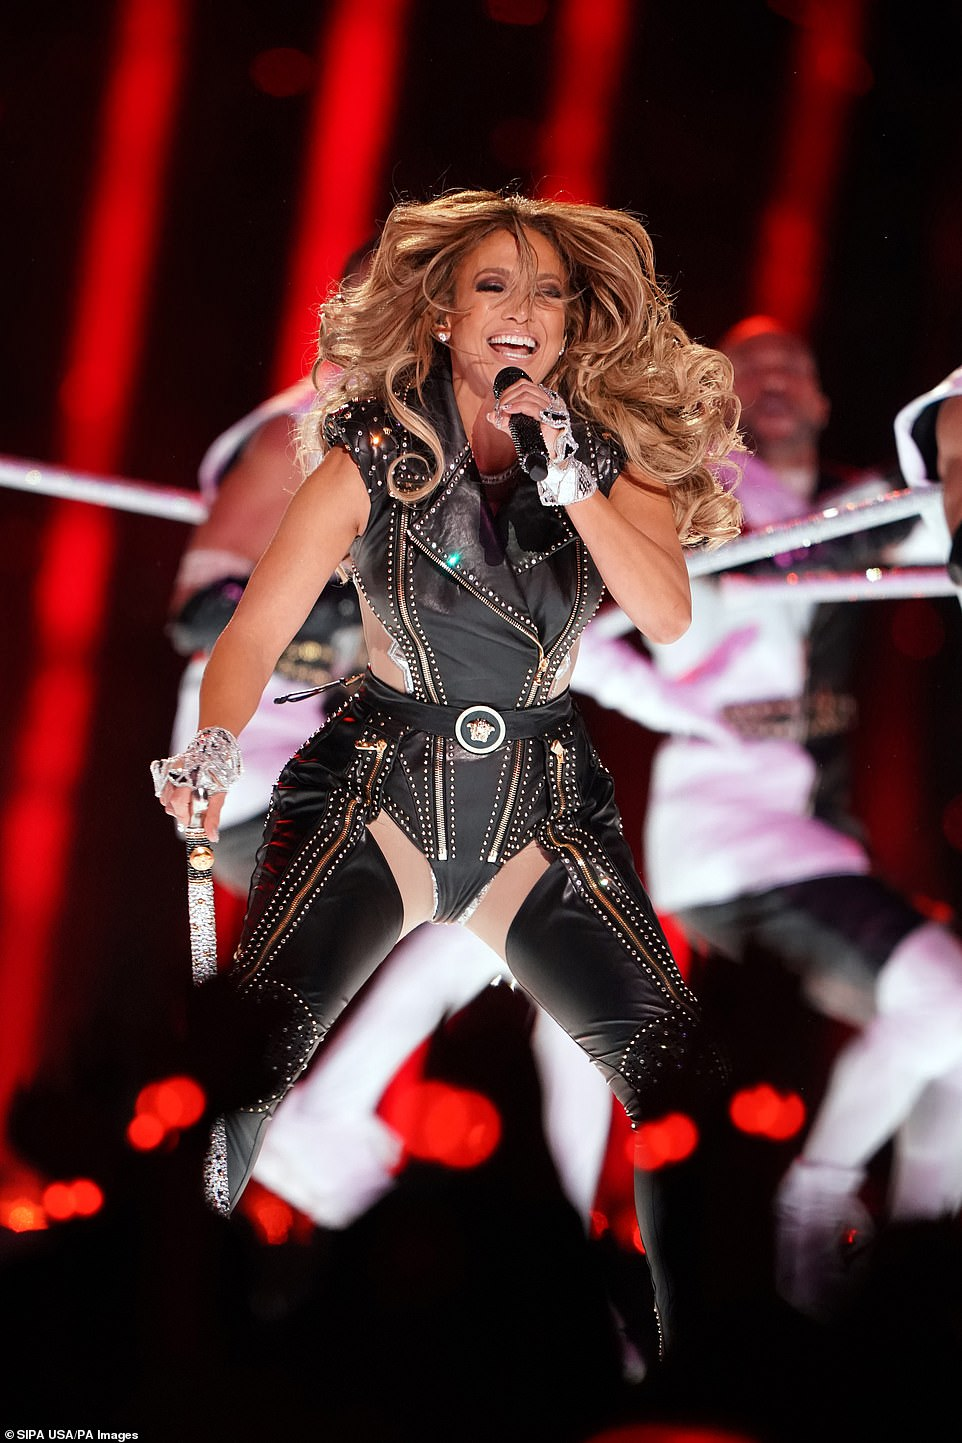 Jennifer Lopez performs during the 2020 Super Bowl on Sunday